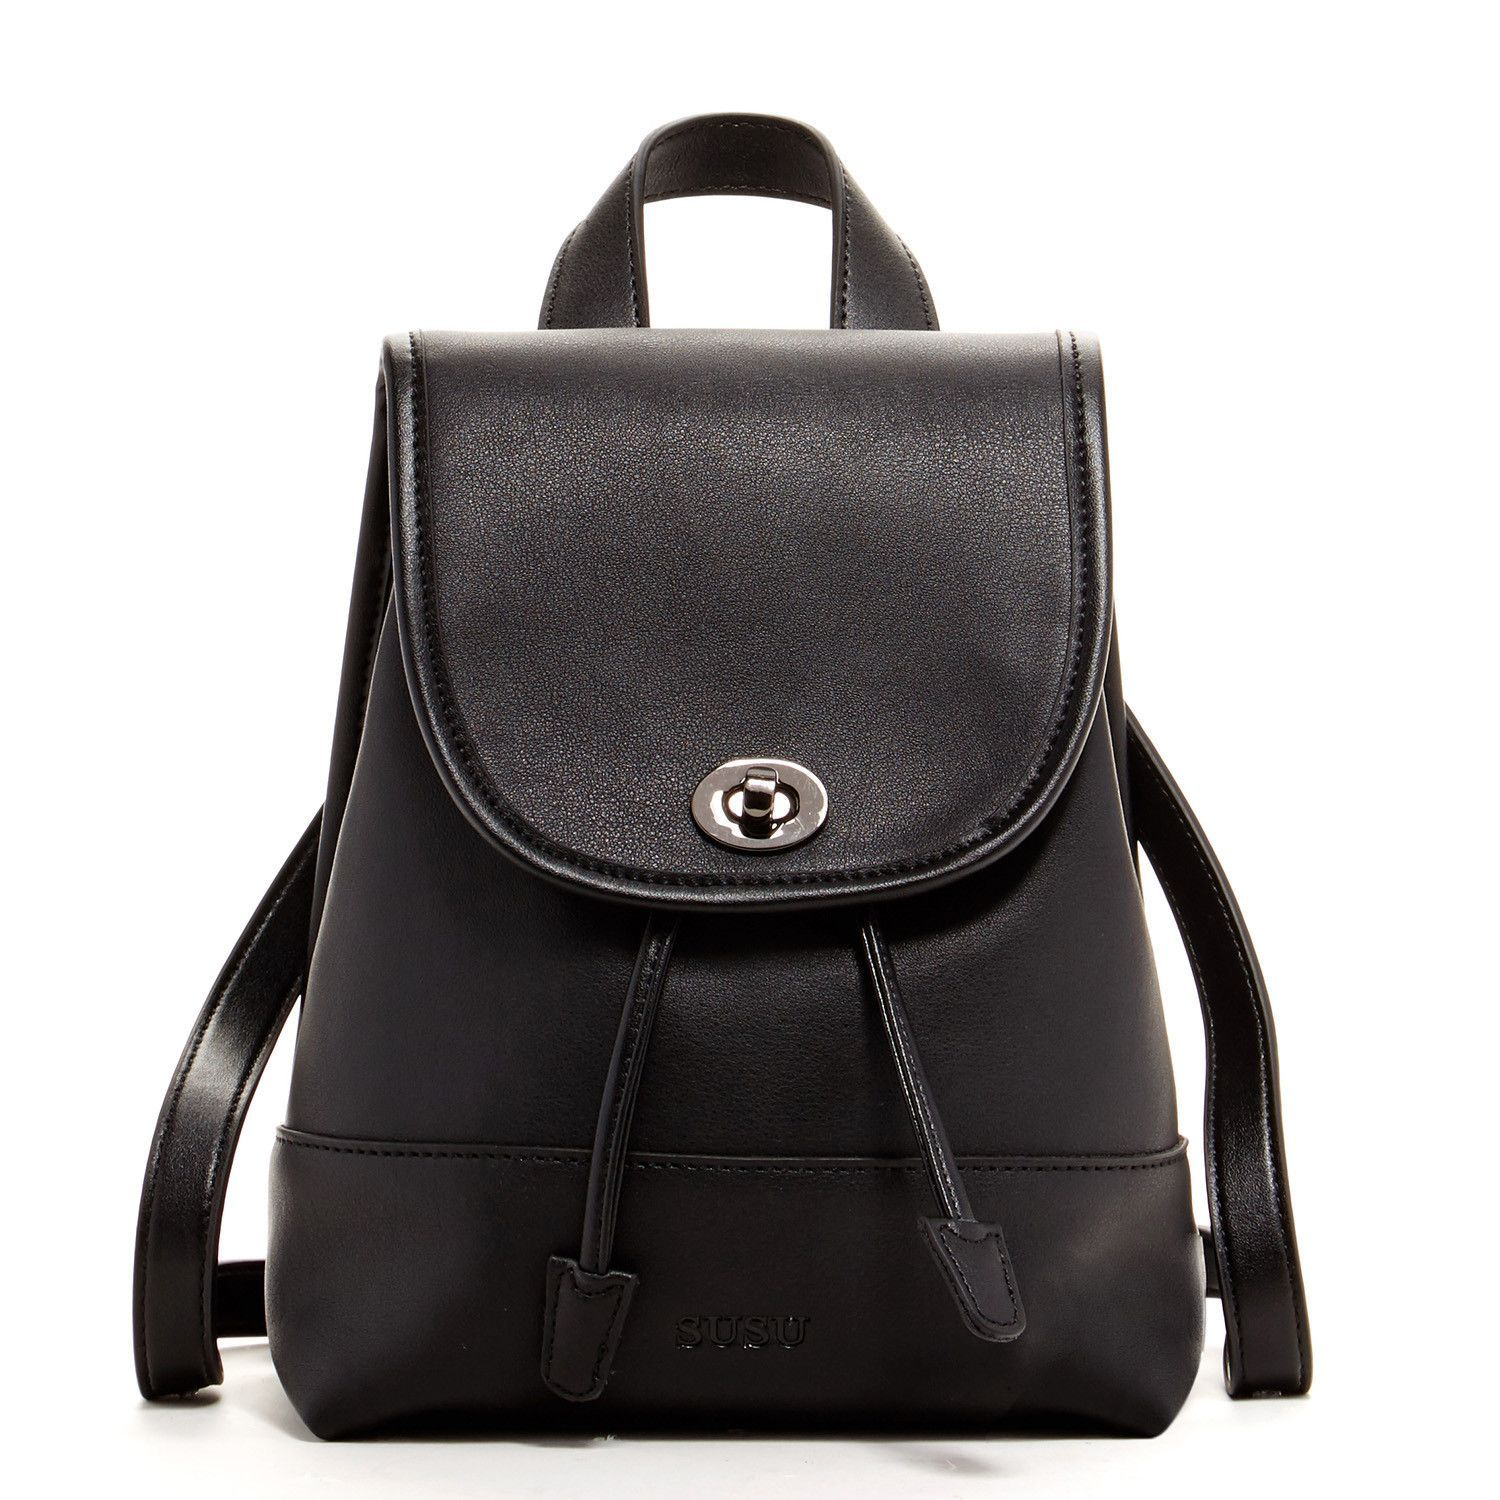 Nicole - Small Modern Leather Backpack | Products | Pinterest ...